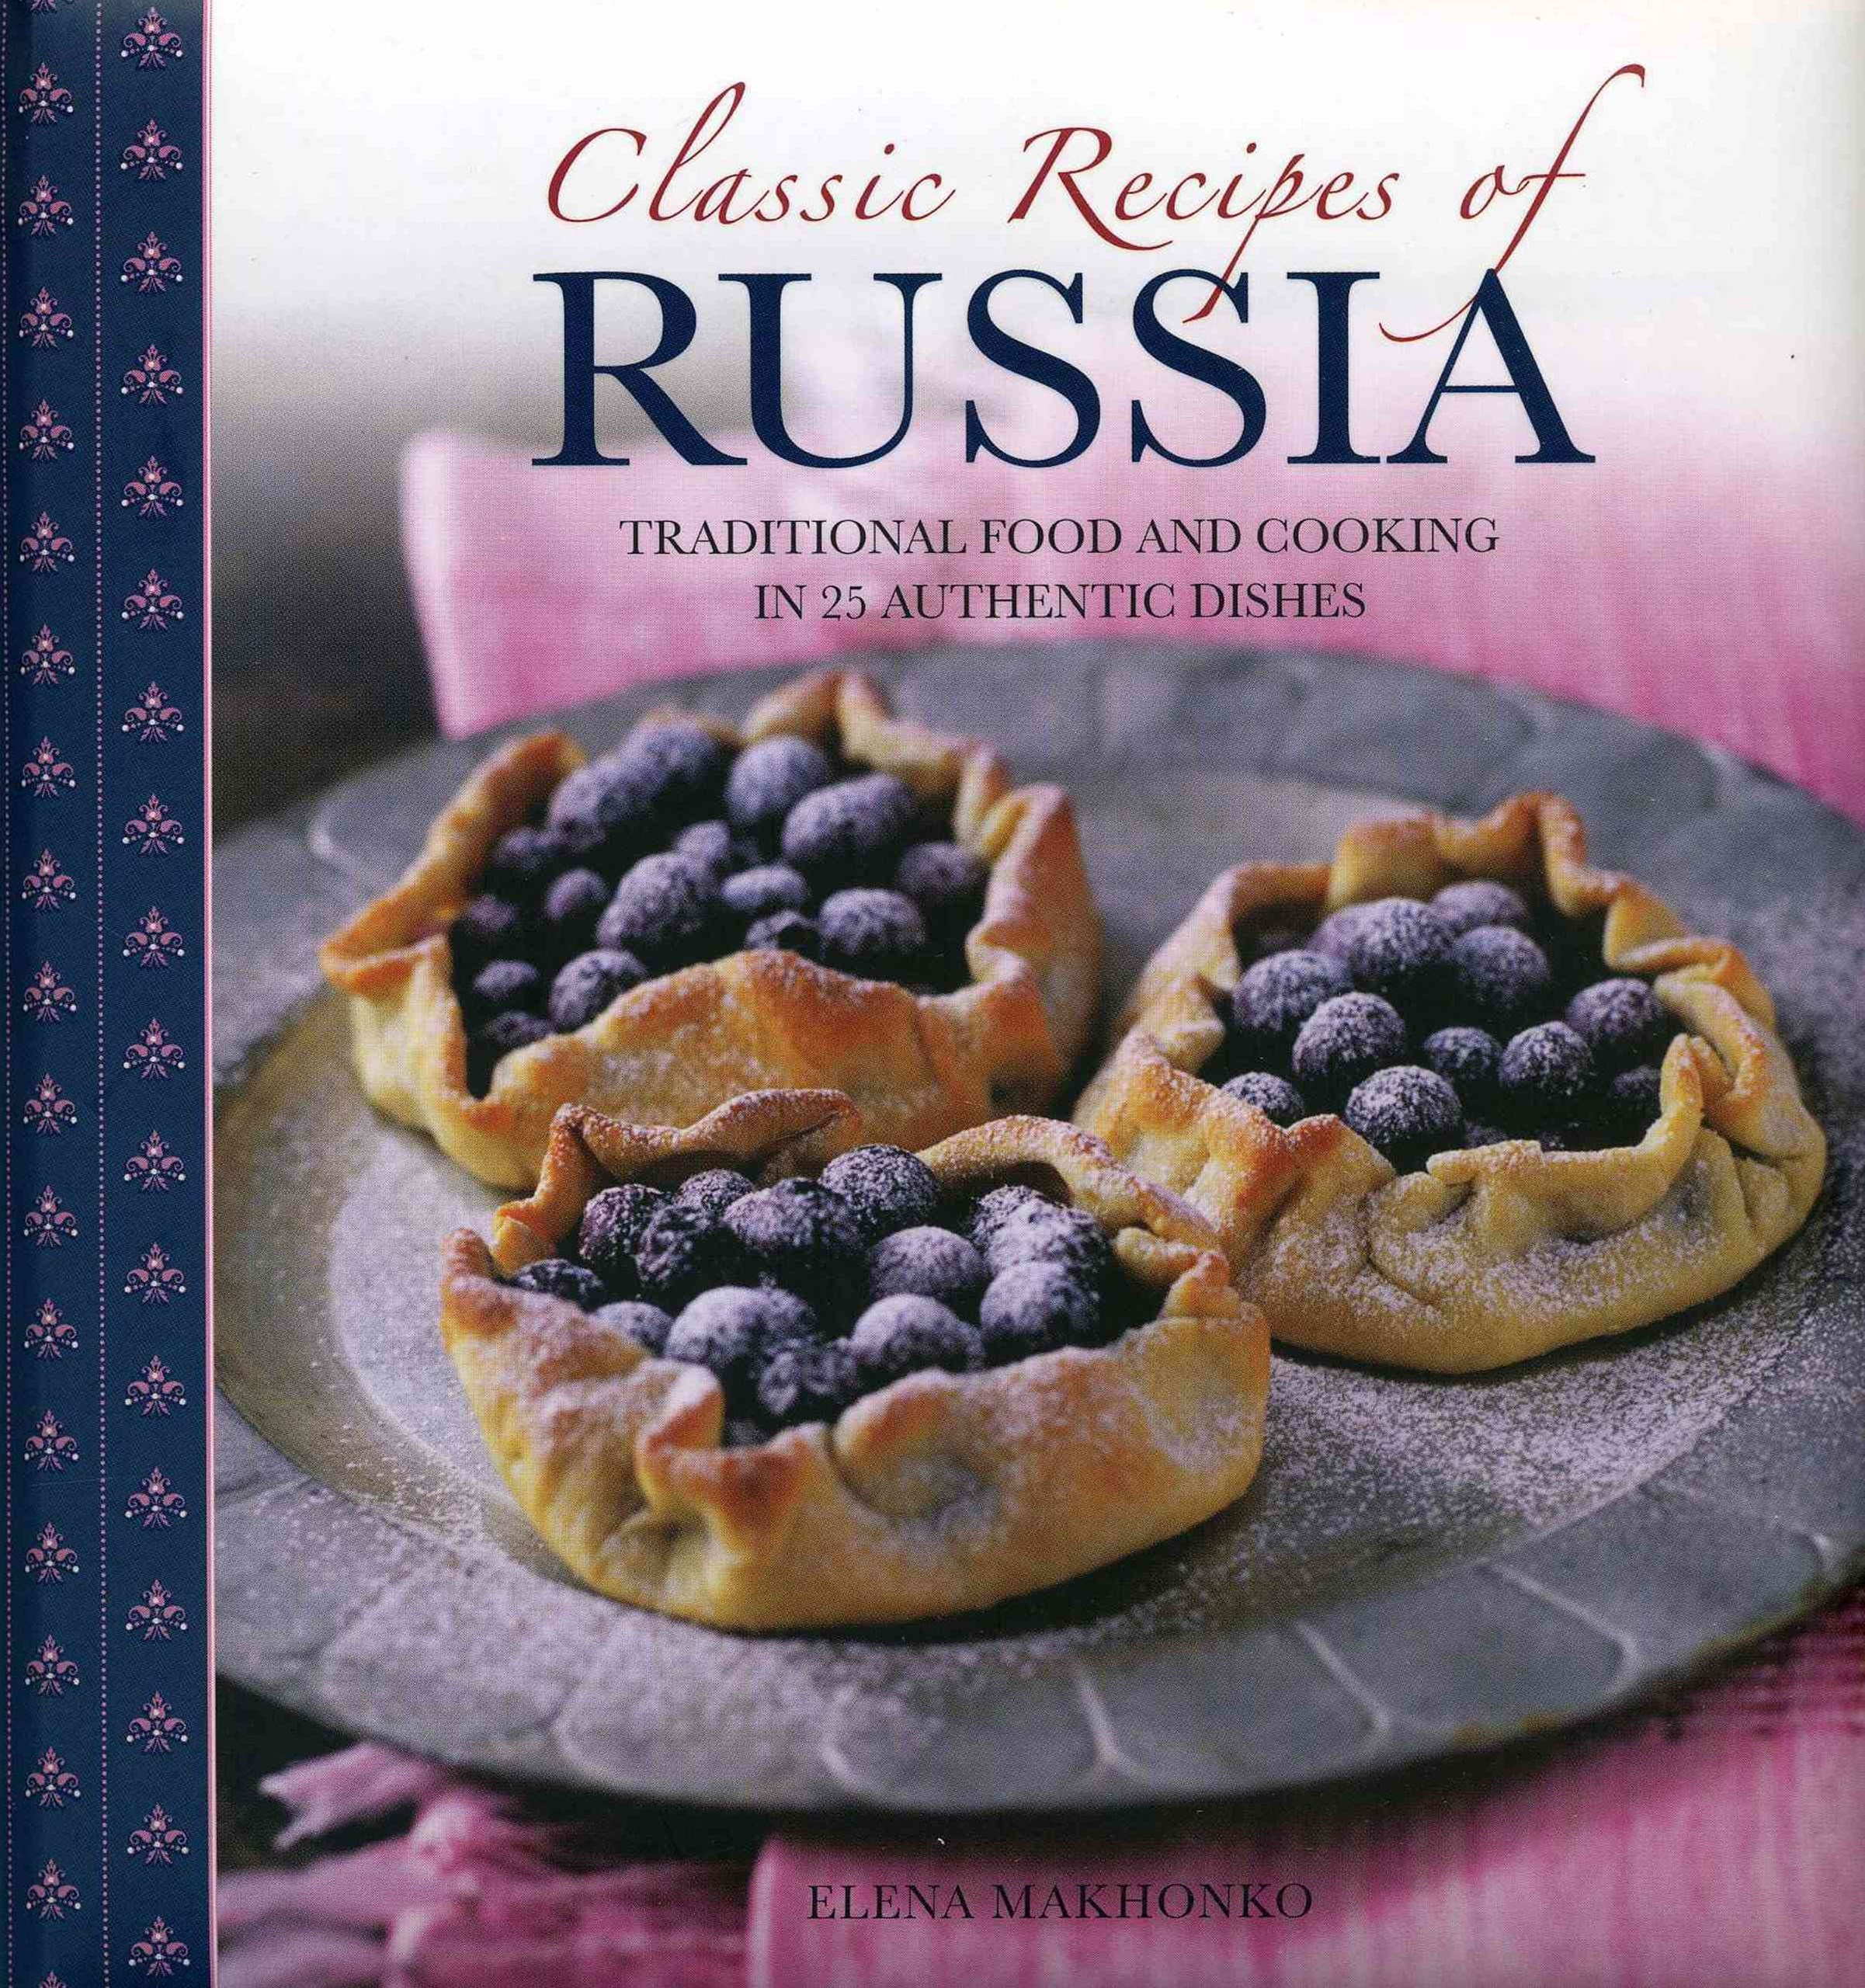 Classic Recipes of Russia